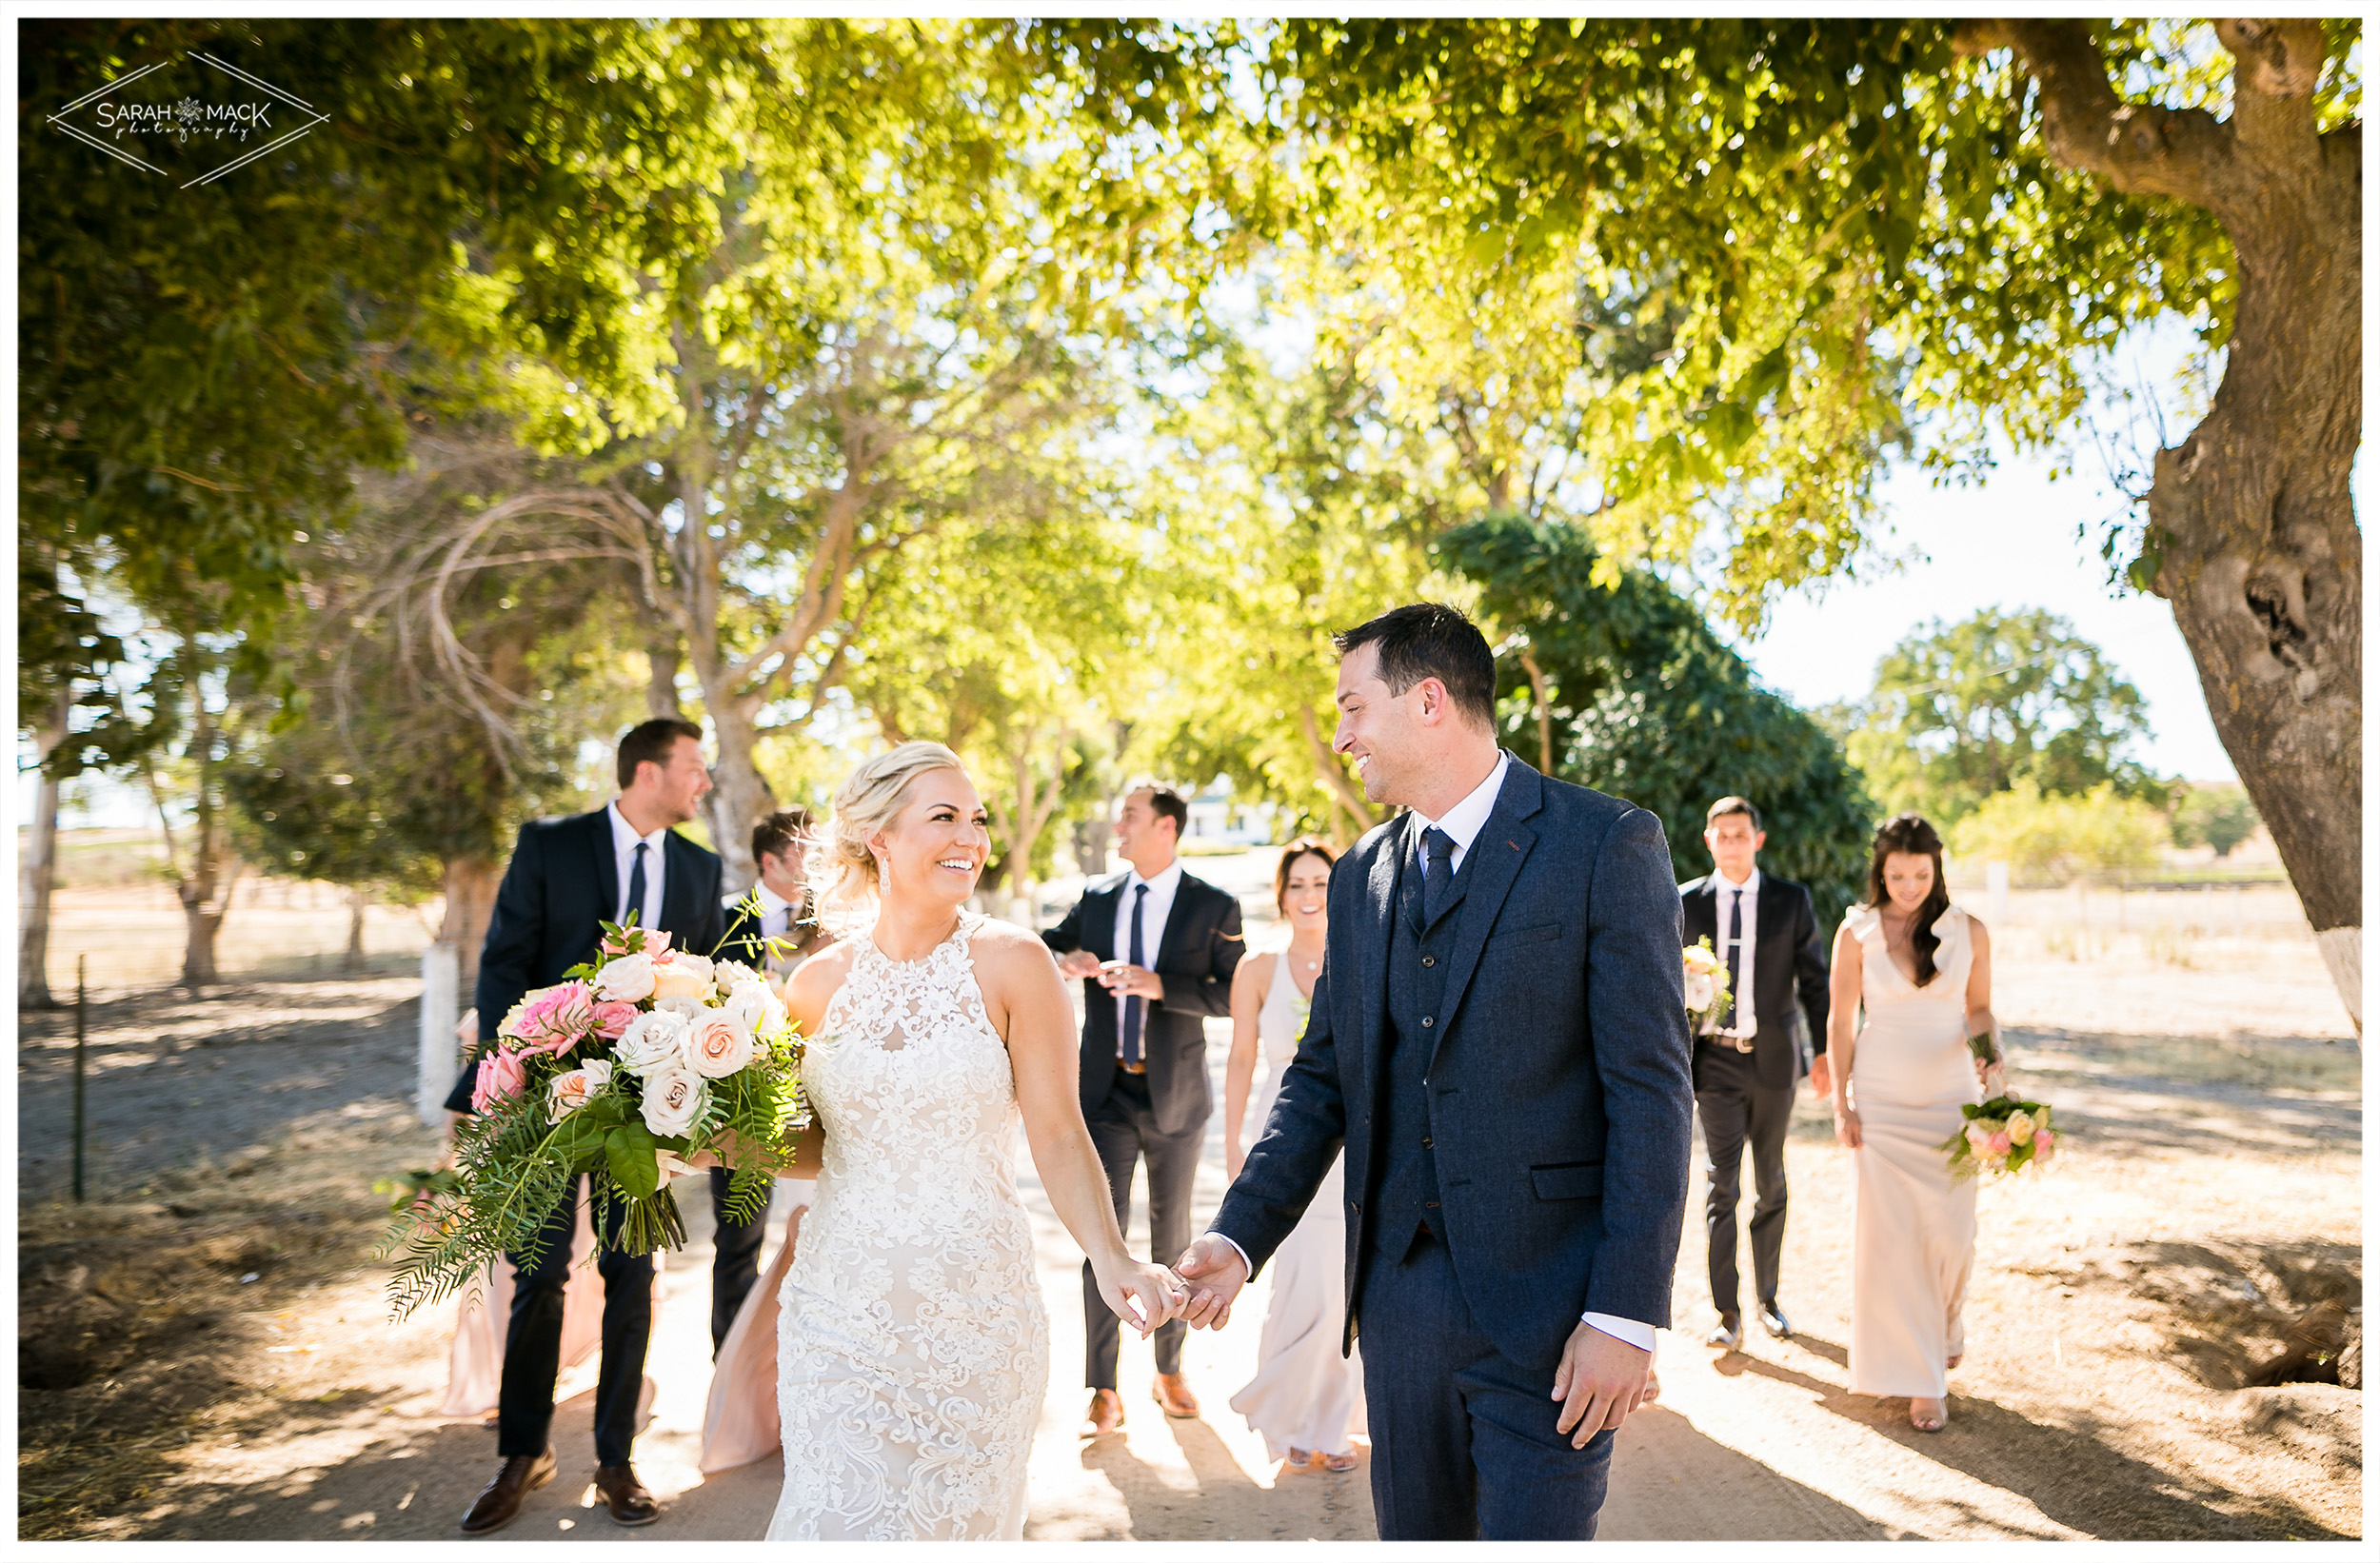 MA-Chandler-Ranch-Paso-Robles-Wedding-Photography-50.jpg